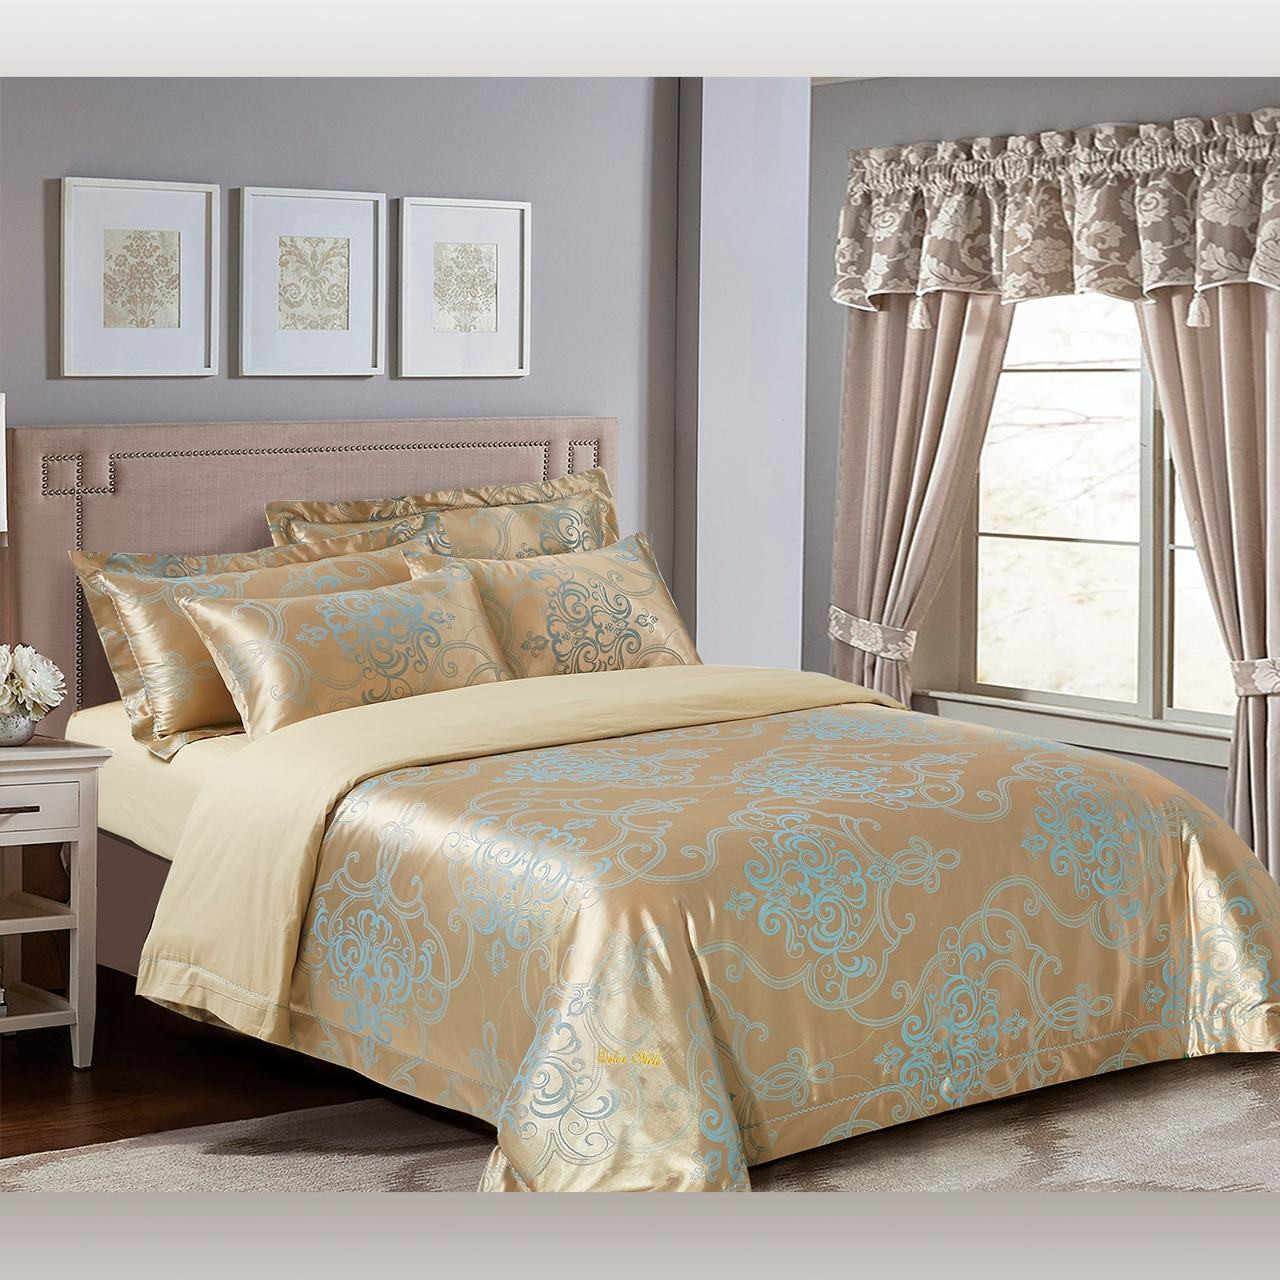 DM505Q Queen size Dolce Mela Bedding Set UPC: 8171460143308